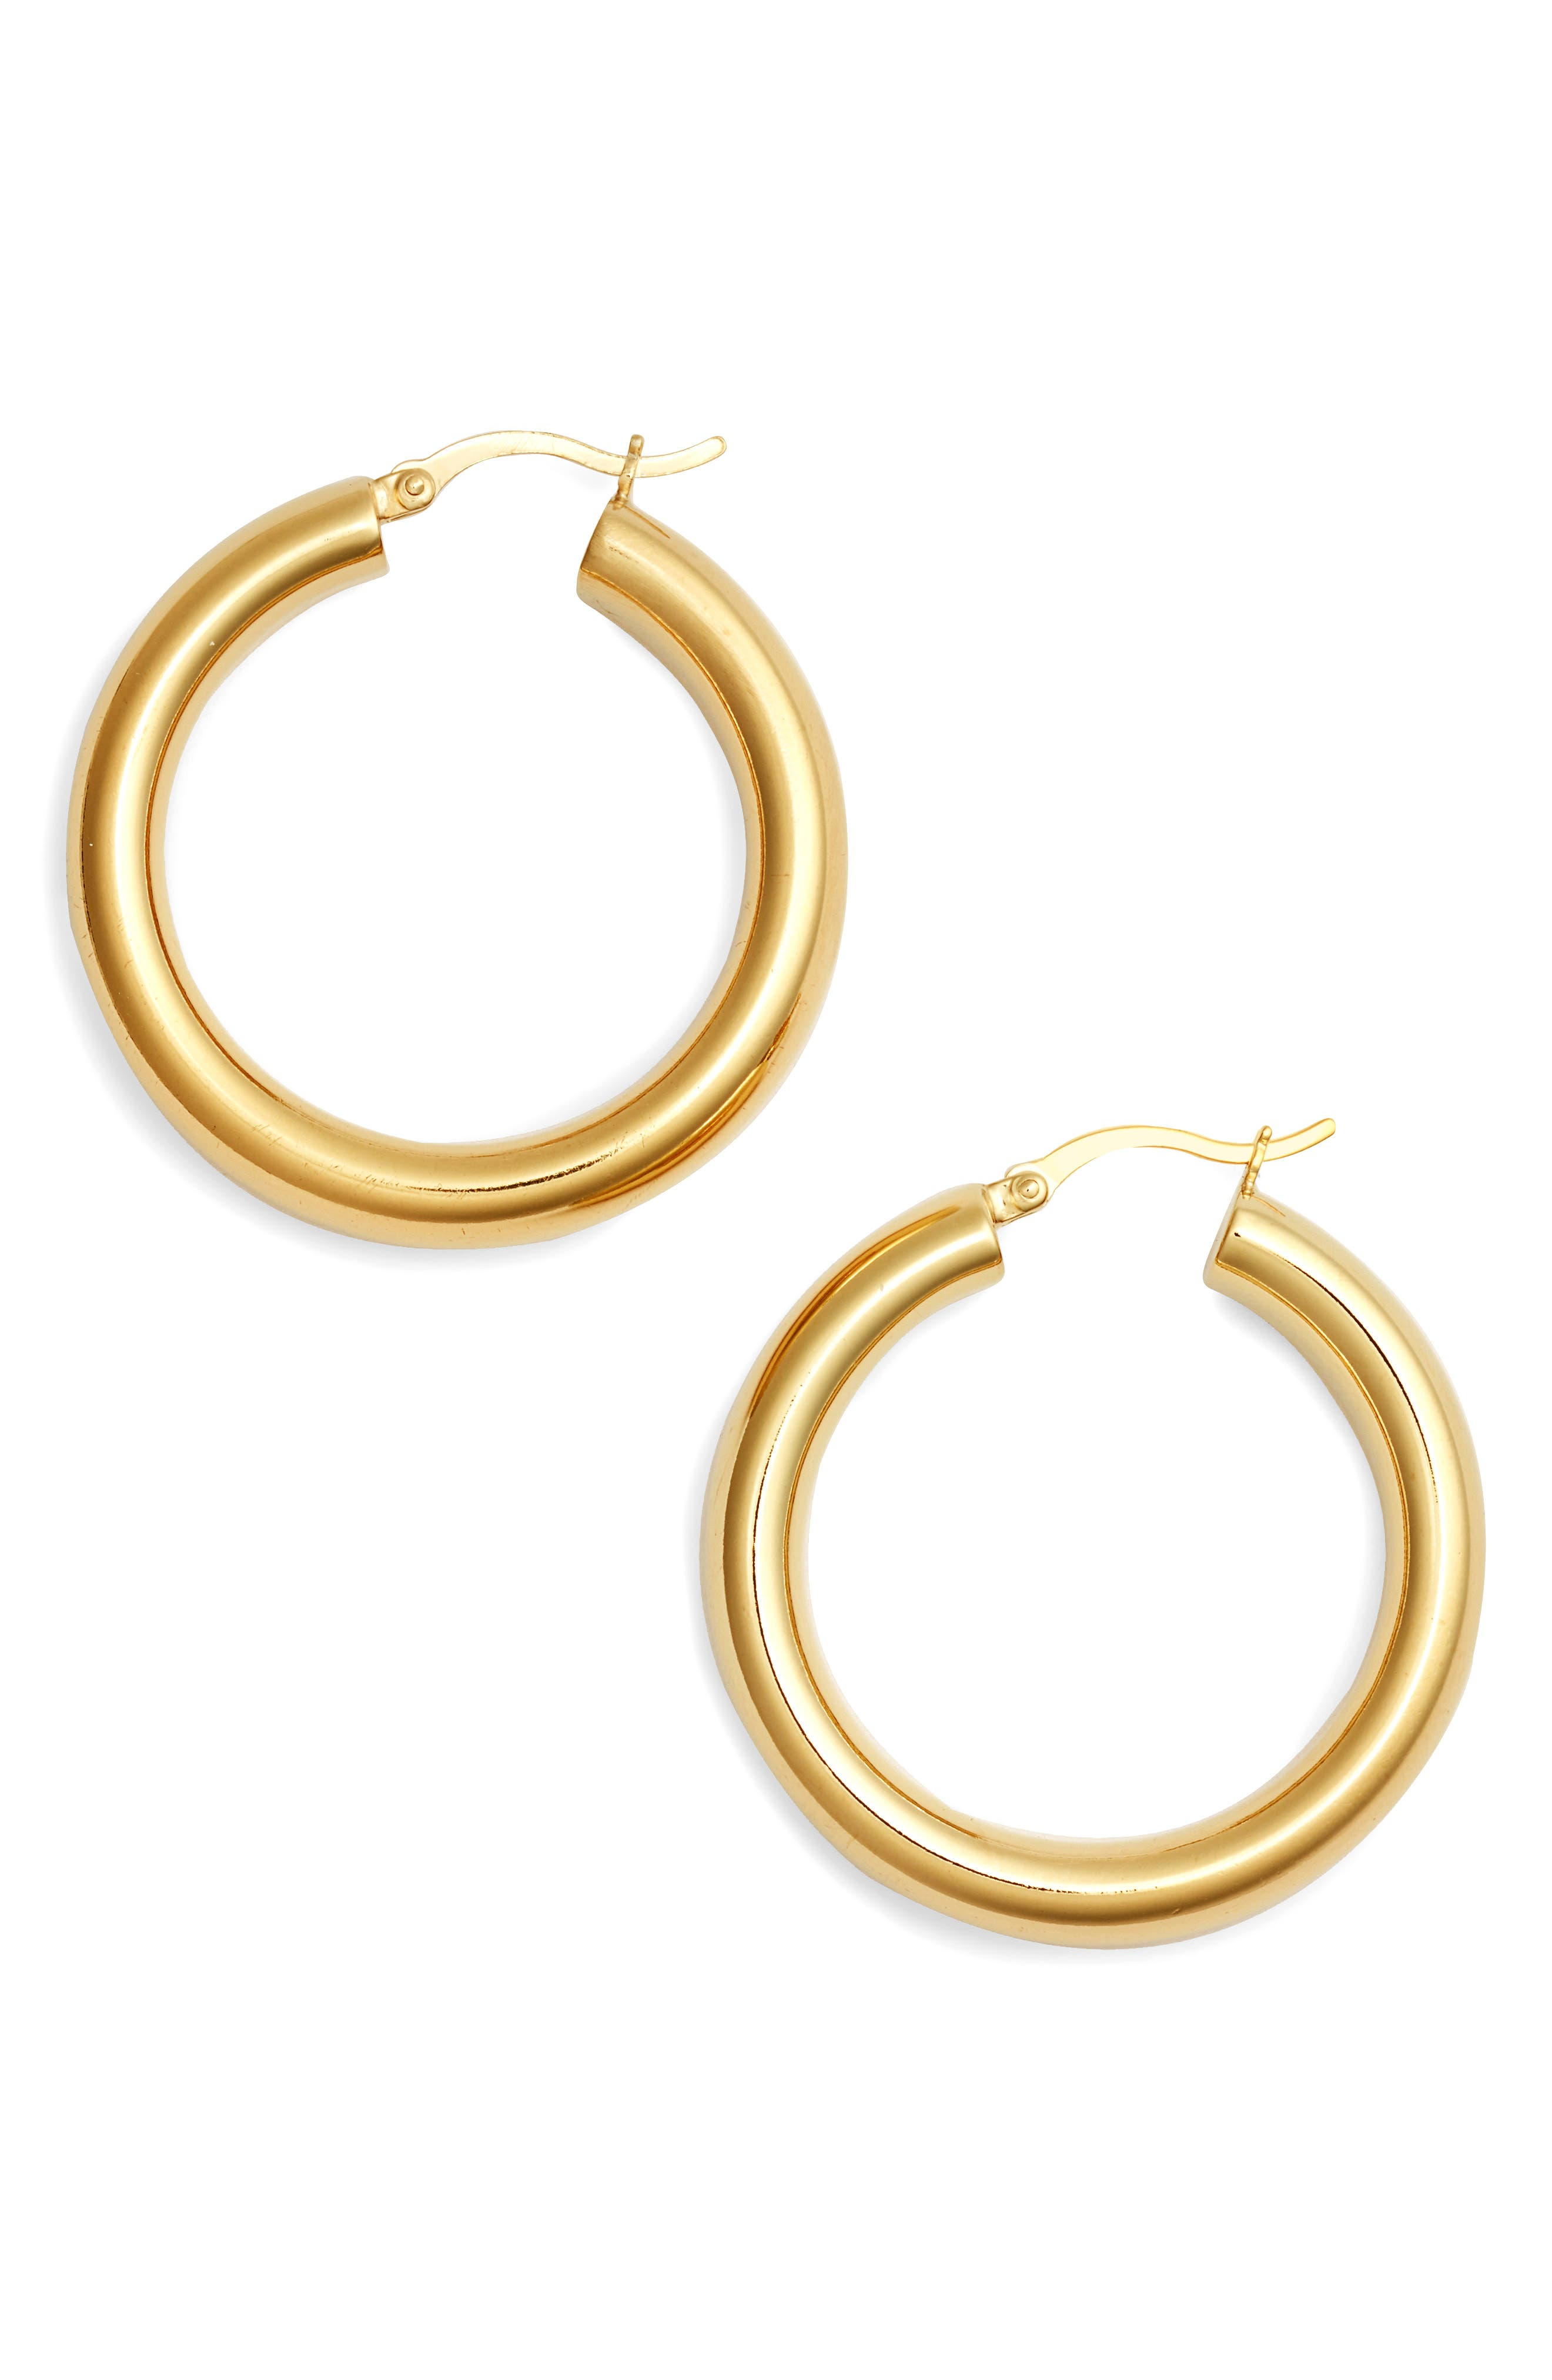 Small Hoop Earrings,                         Main,                         color, GOLD